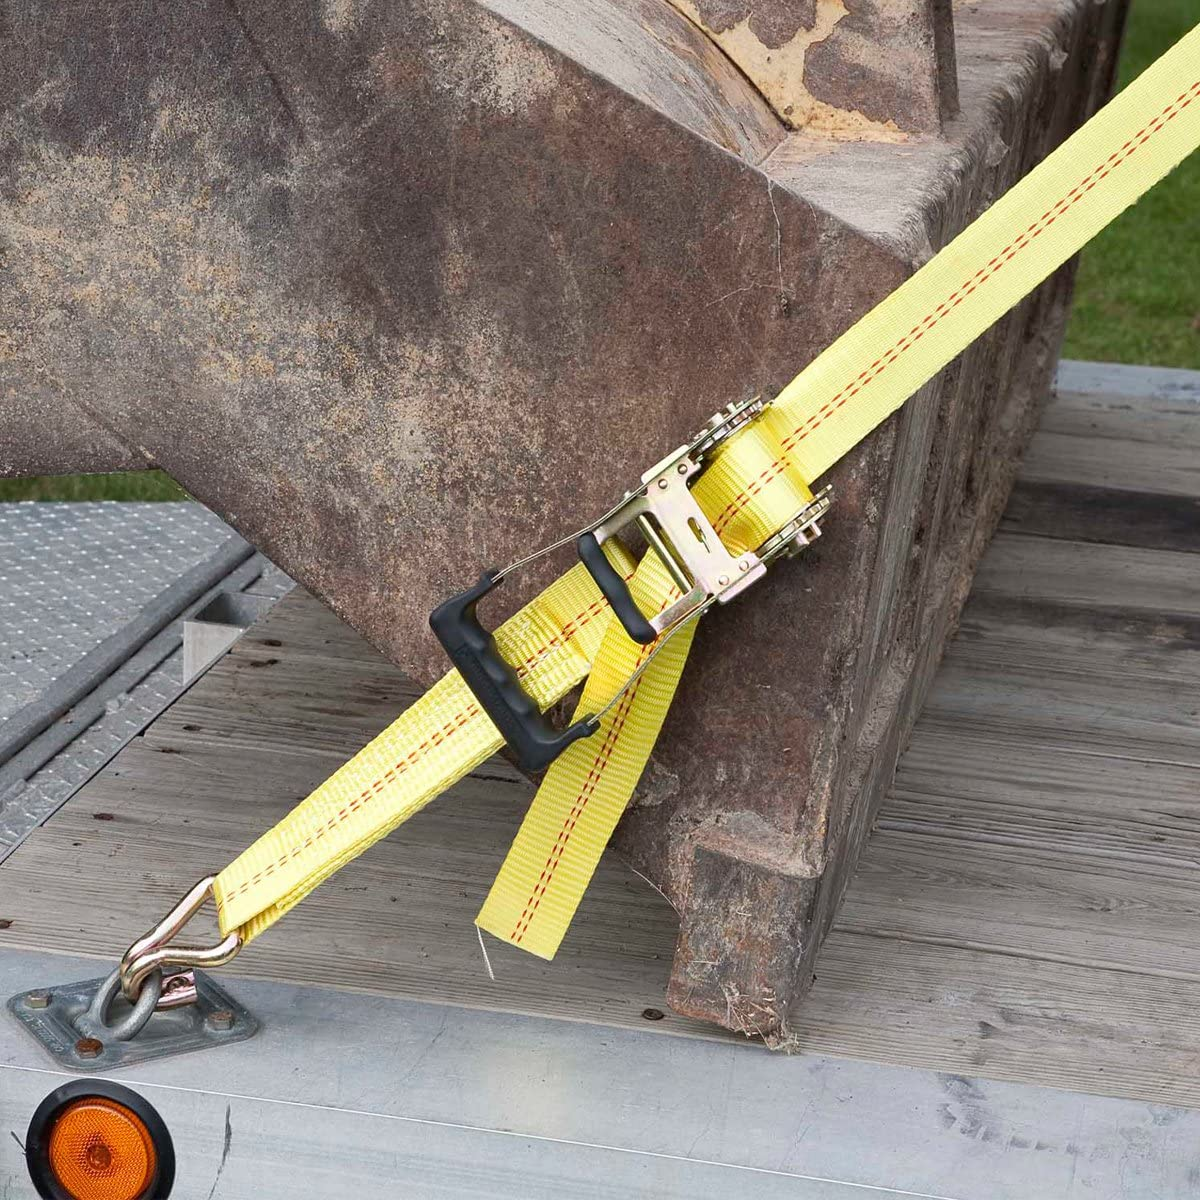 Safely Haul Large Equipment Yellow 10,000 lbs Break Strength SmartStraps 27-Foot Premium Ratchet Straps 1pk 3,333 lbs Safe Work Load Vehicles and More Commercial Tie-Downs Designed for Heavy-Duty Transport Tractors